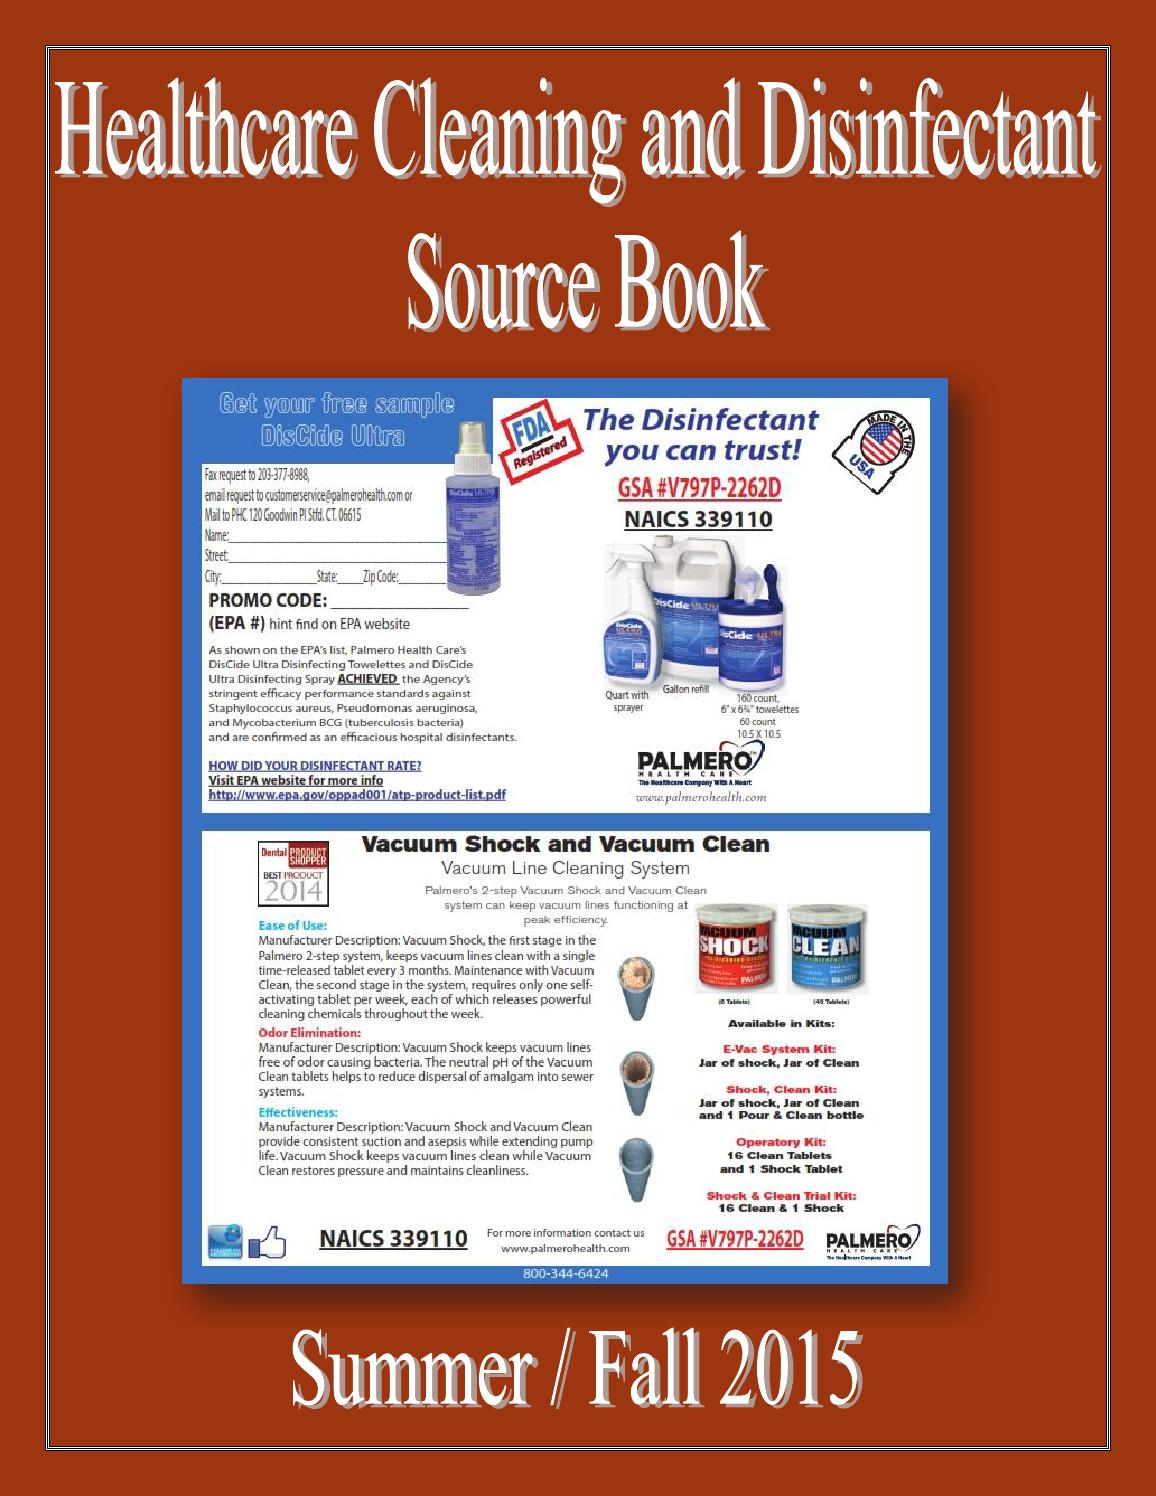 Healthcare Cleaning and Disinfectant Source Book by Federal Buyers Guide,  inc. - issuu